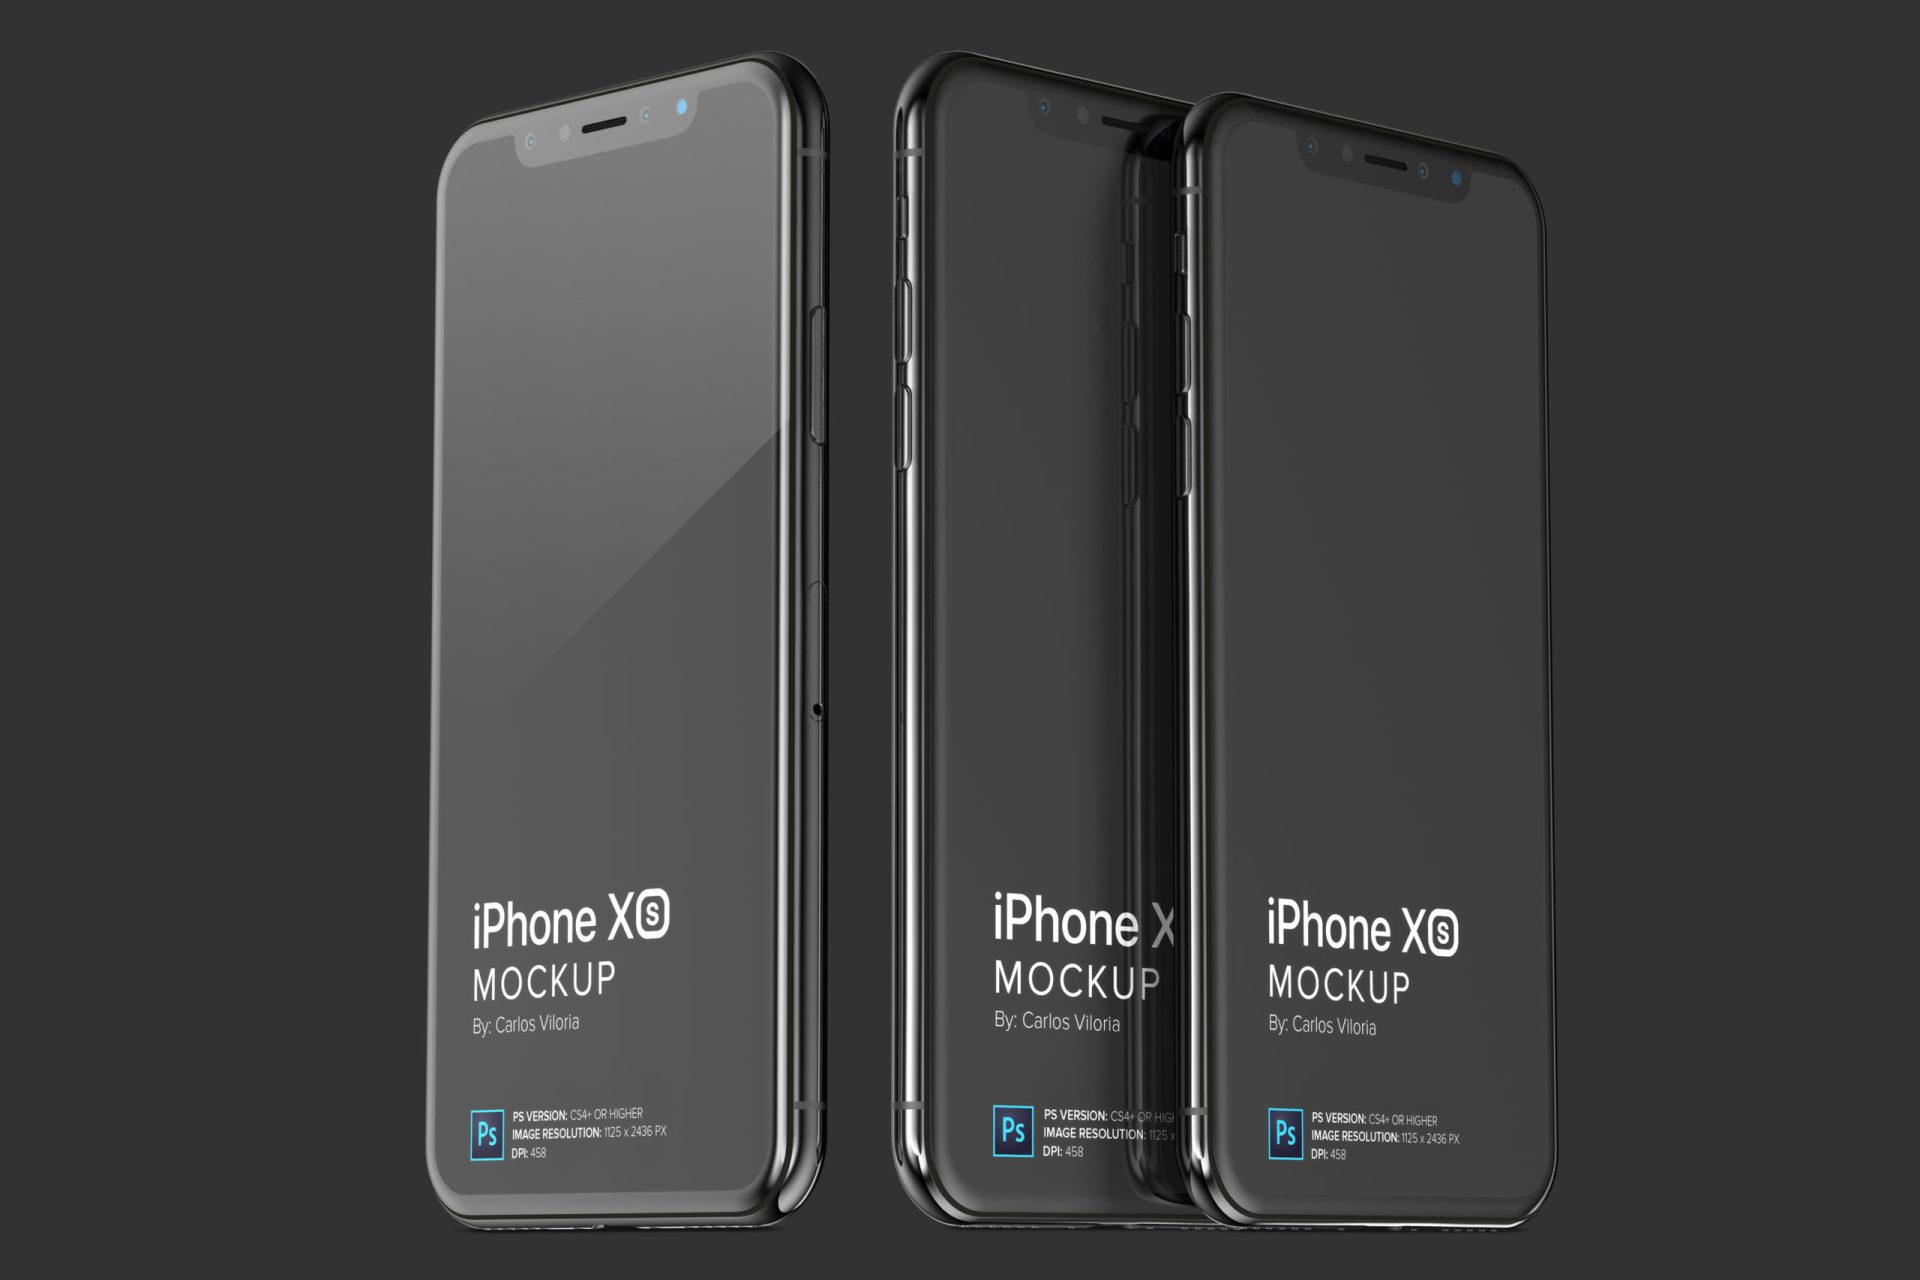 iPhone XS Mockup for iOS Apps Design